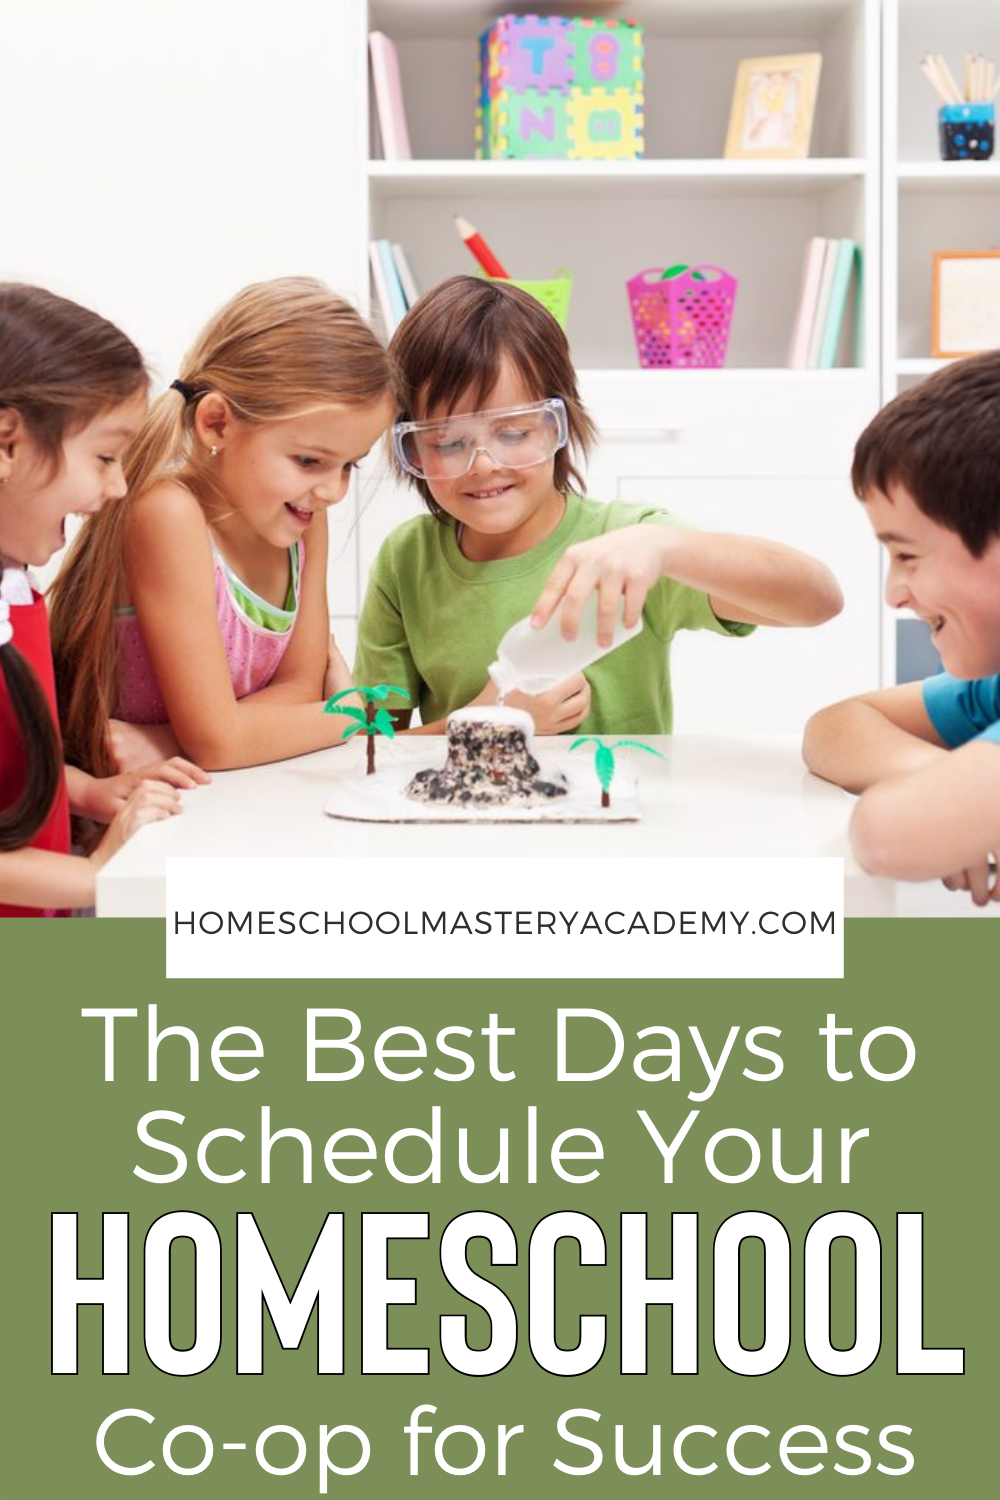 Homeschool Co-op - We give you which days are best to meet to increase attendance and all of the reasons why. #homeschoolgroup #homeschoolcoop #homeschool